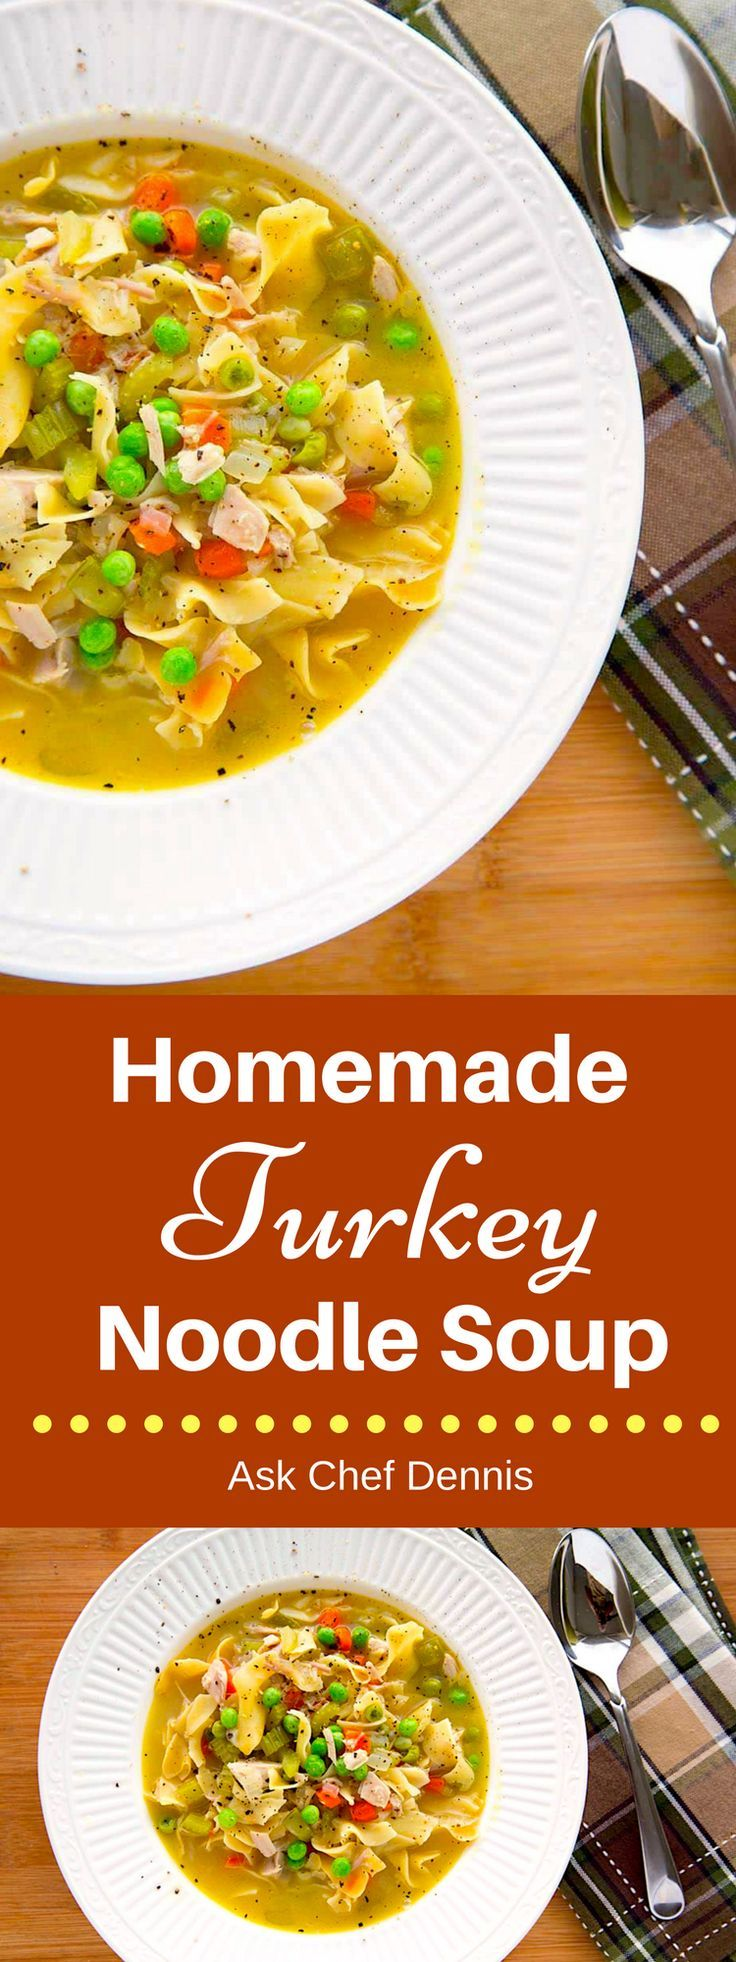 Enjoy a delicious bowl of homemade turkey noodle soup.  It's easy to make and lot better and healthier than those canned soups at the supermarket. via @AxkChefDennis